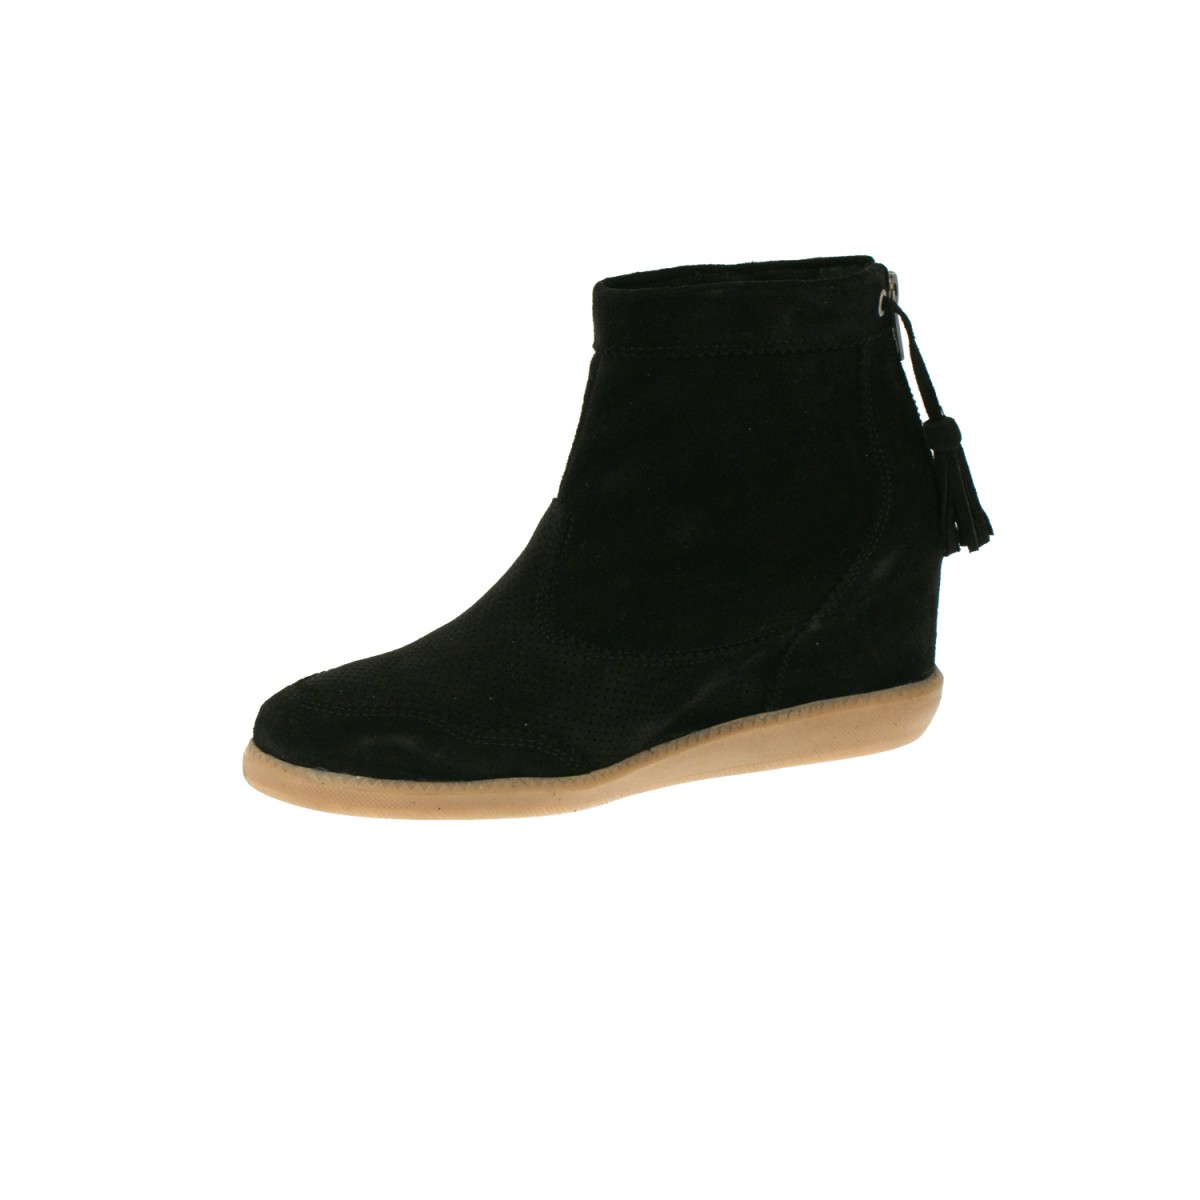 Pavement Vega Black-32